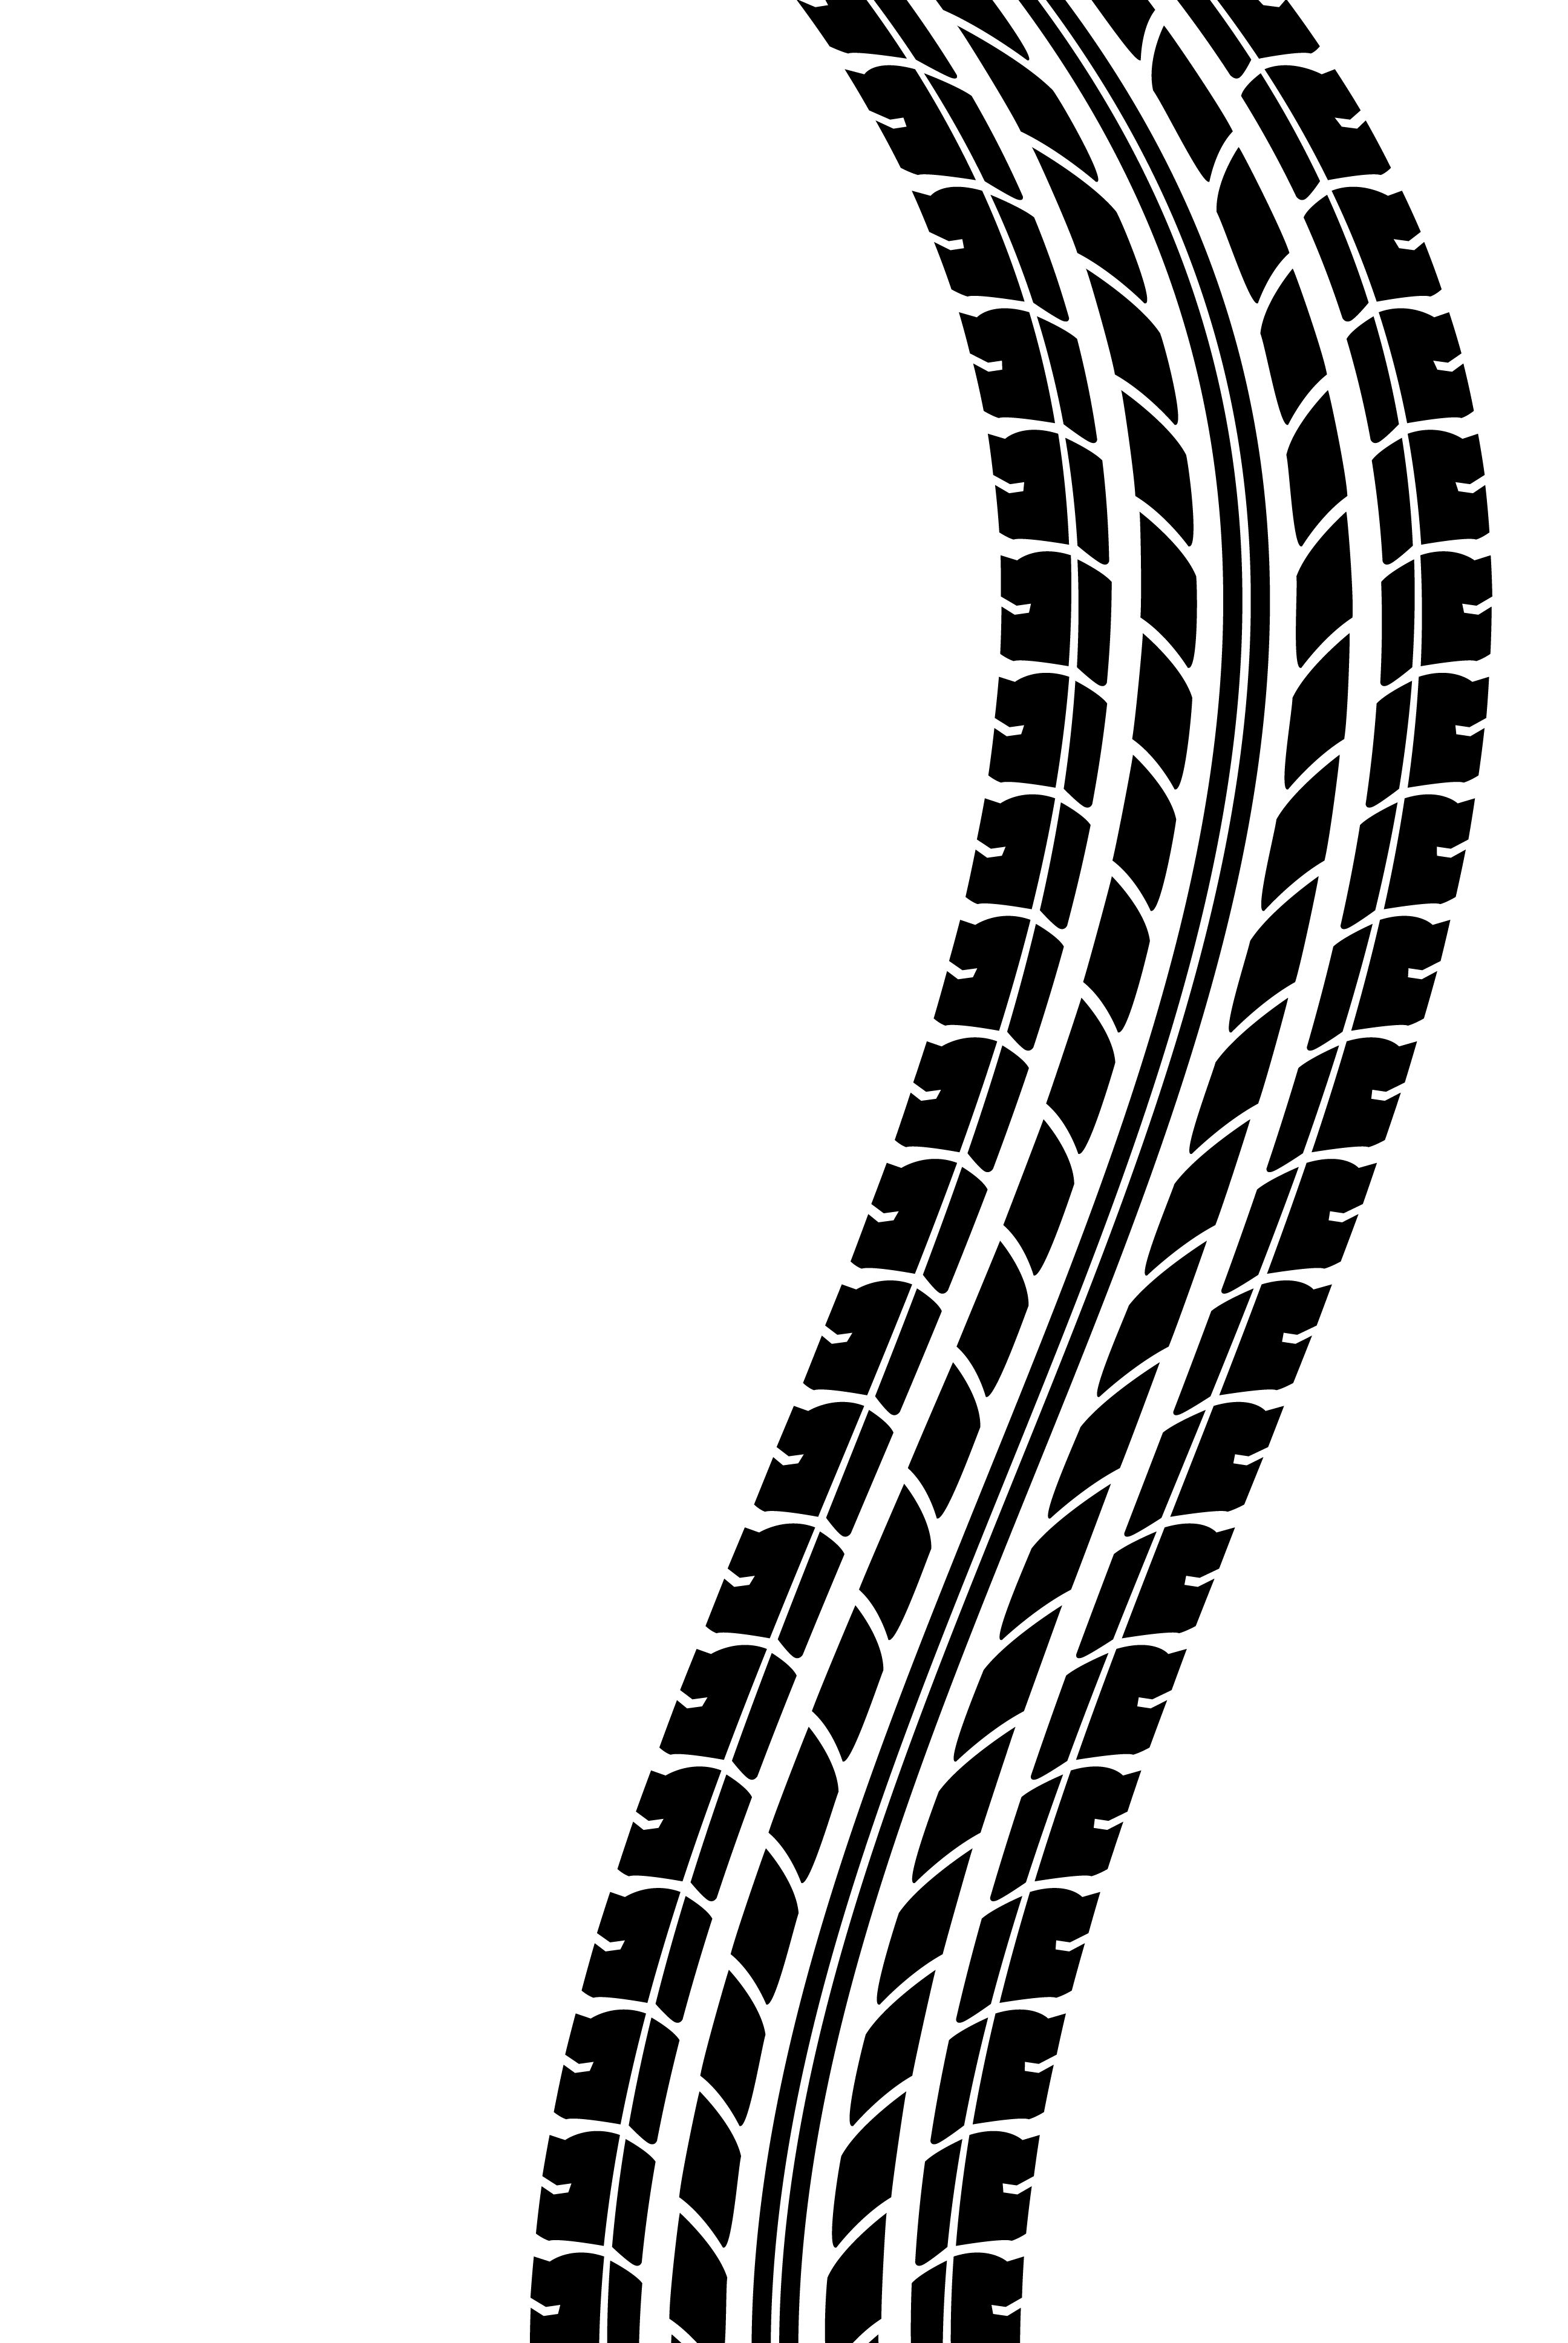 2592x3872 Collection Of Tire Tread Clipart Free High Quality, Free